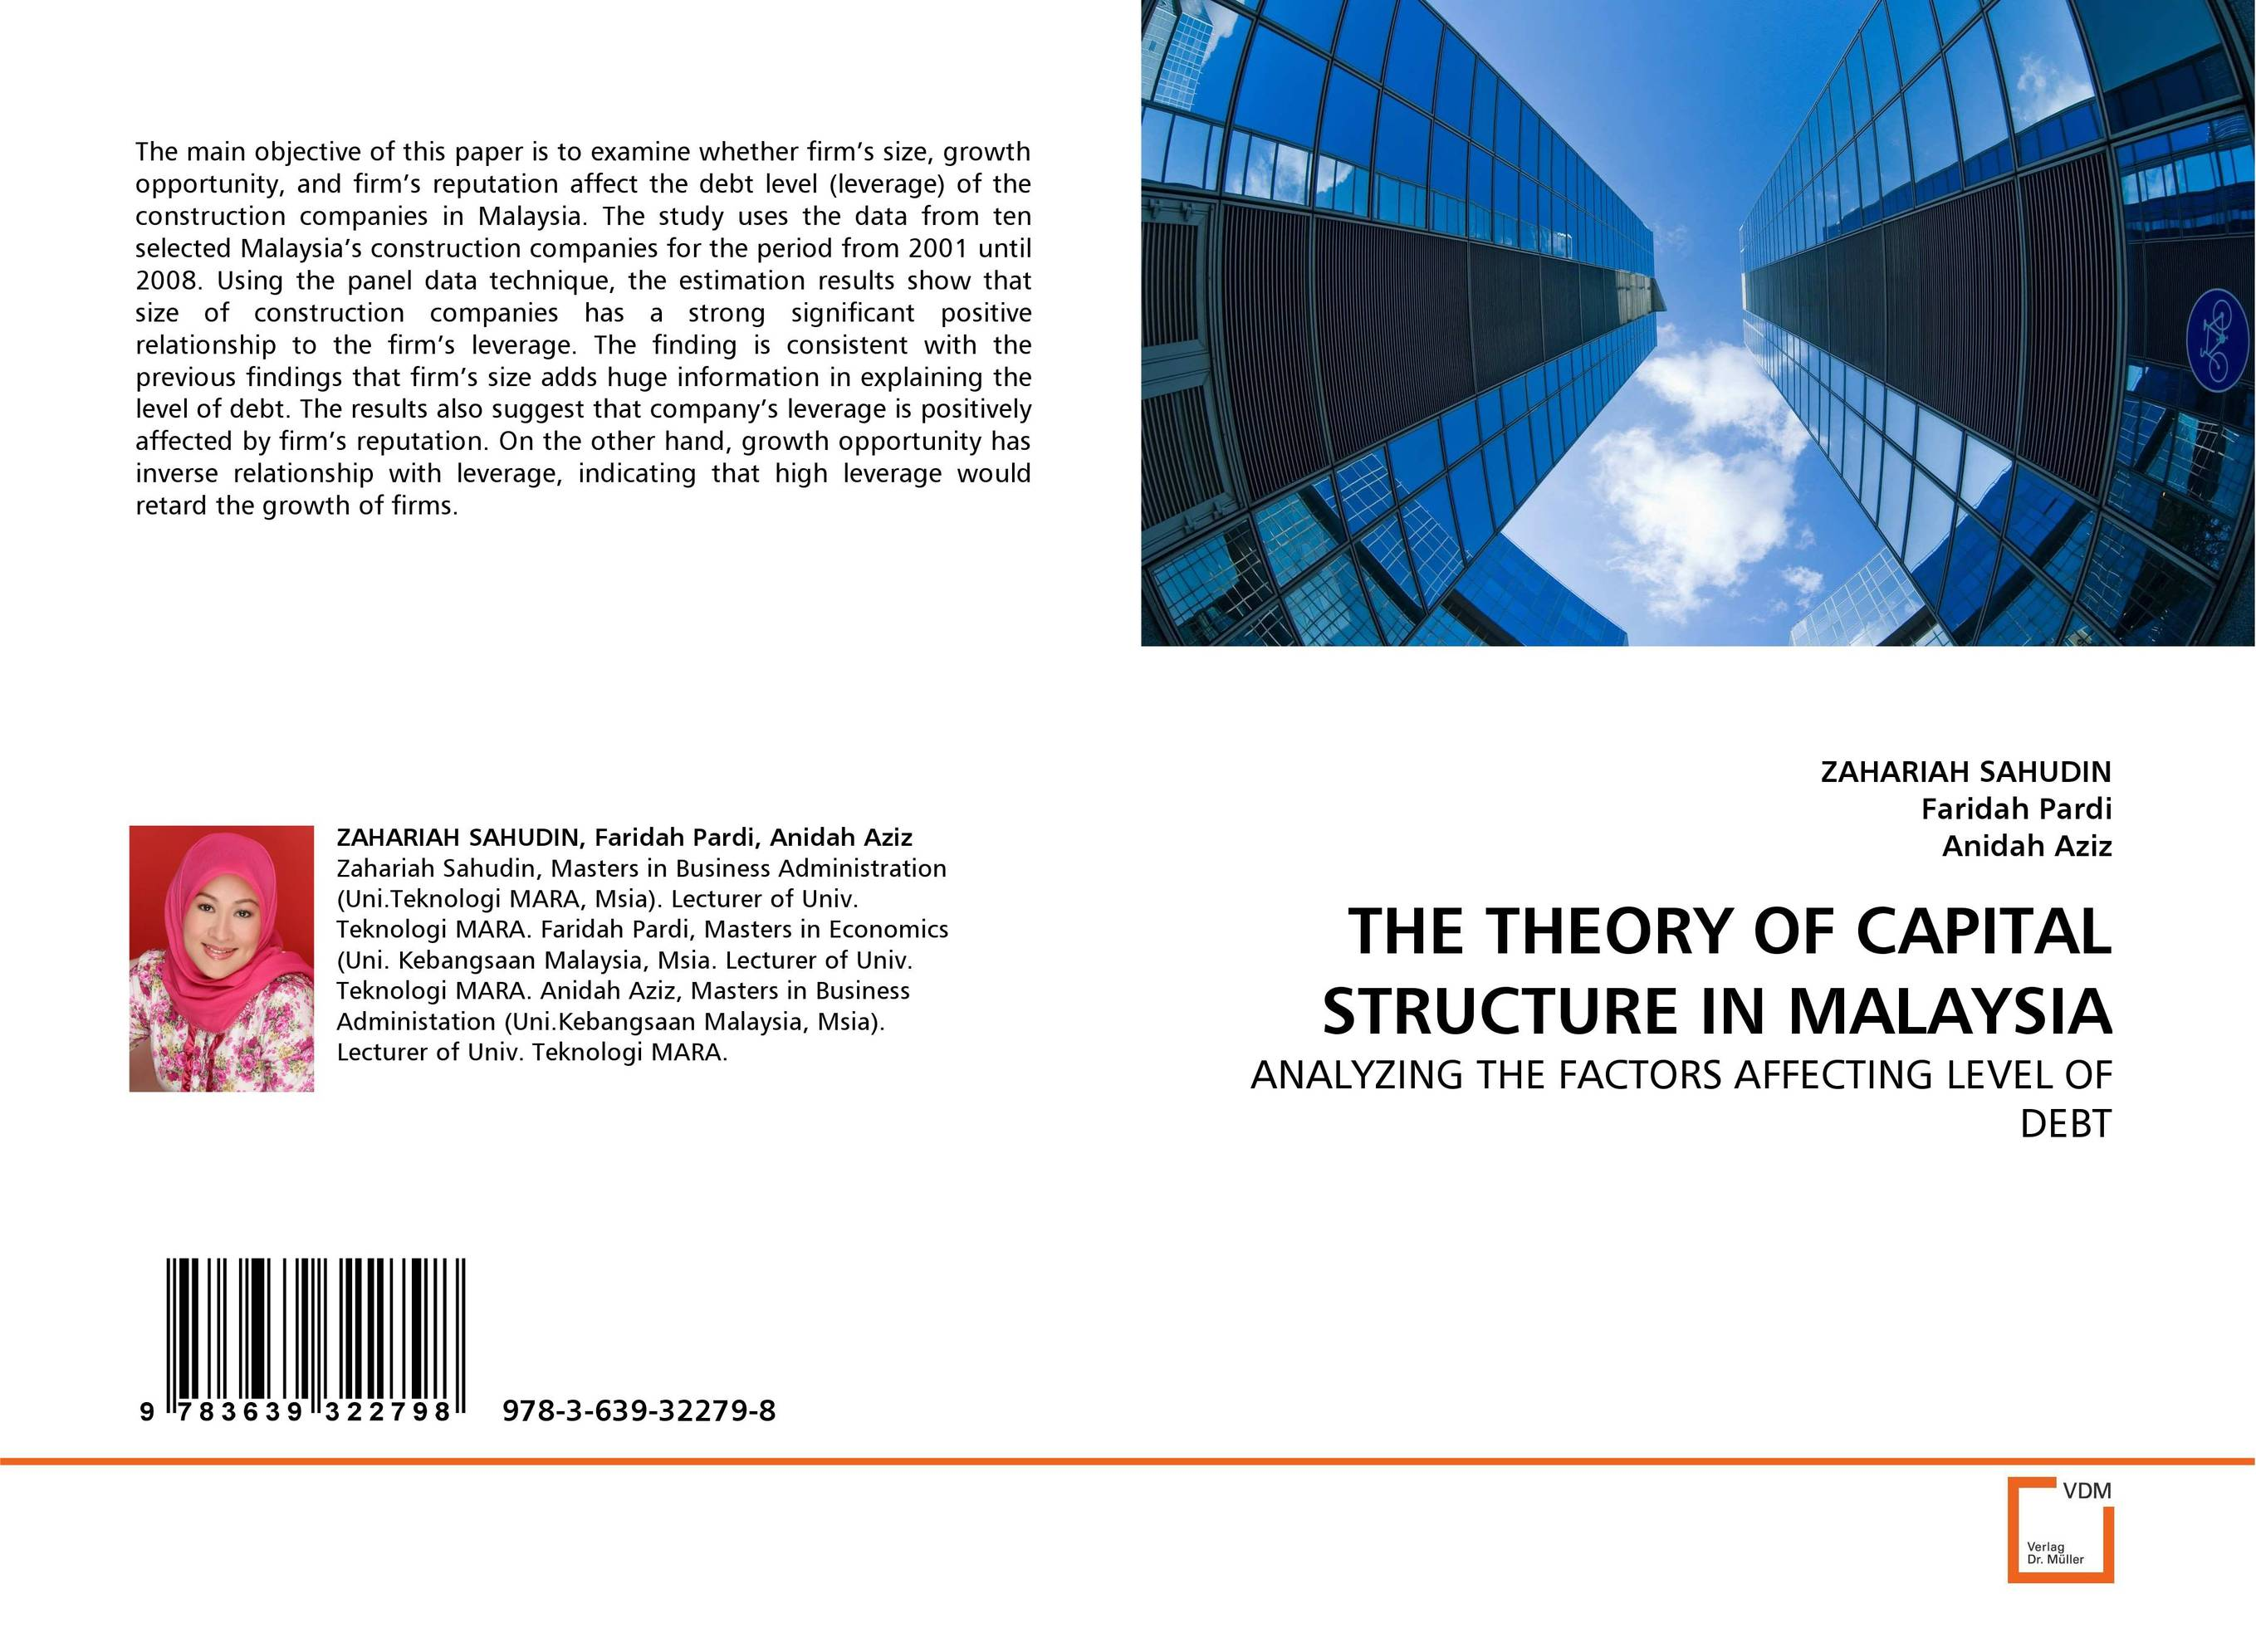 THE THEORY OF CAPITAL STRUCTURE IN MALAYSIA the firm